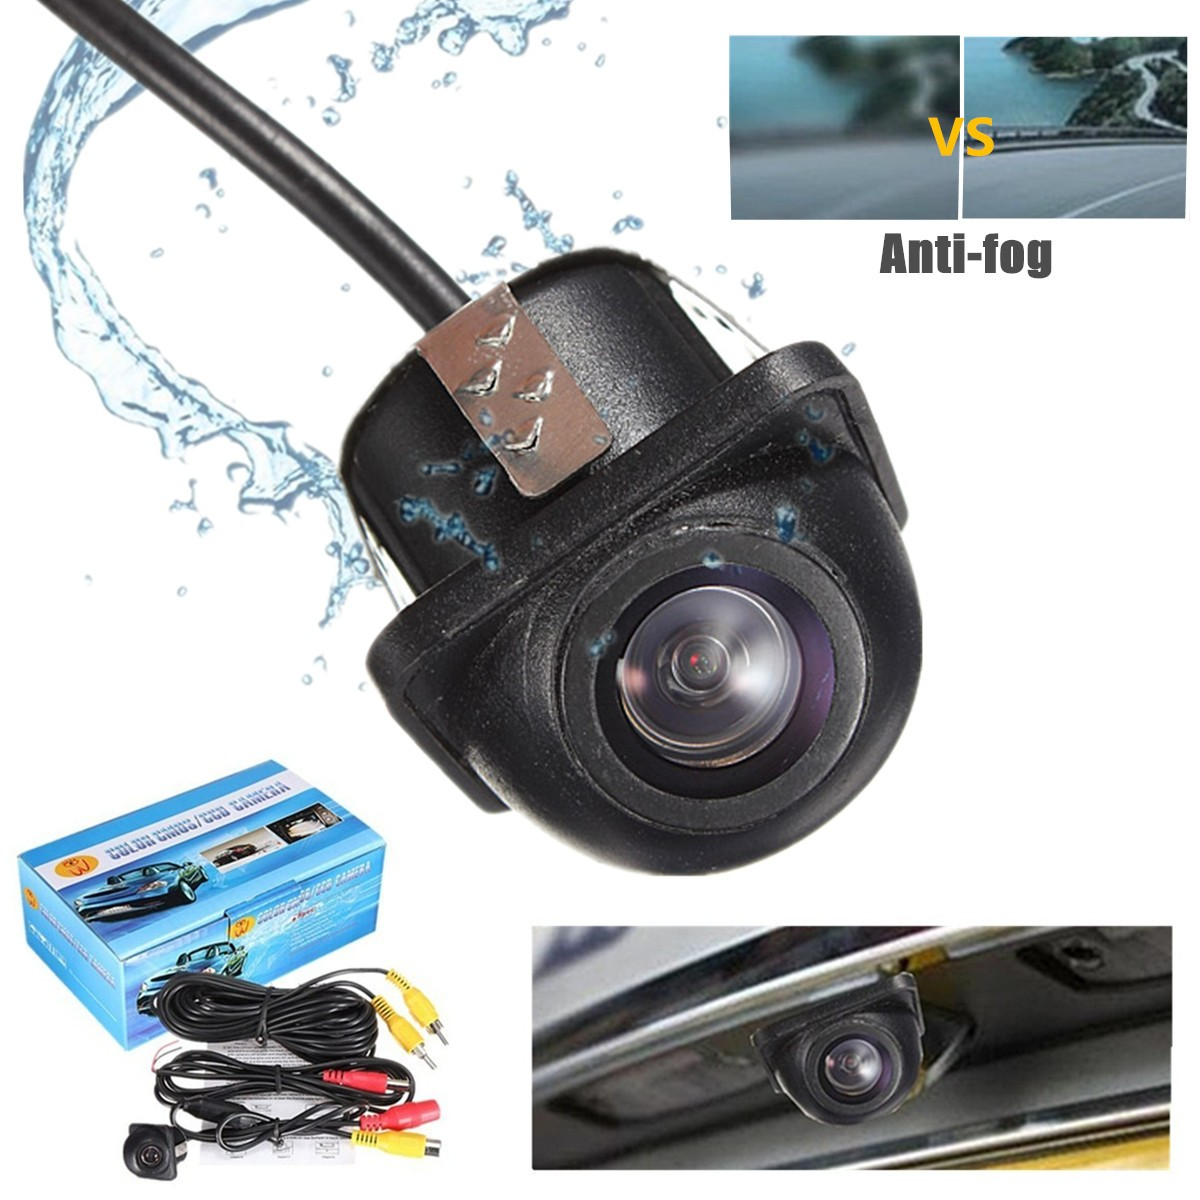 Universal Car Rear View Camera Auto Parking Reverse Backup HD Camera Night Vision Support NTSC Video System